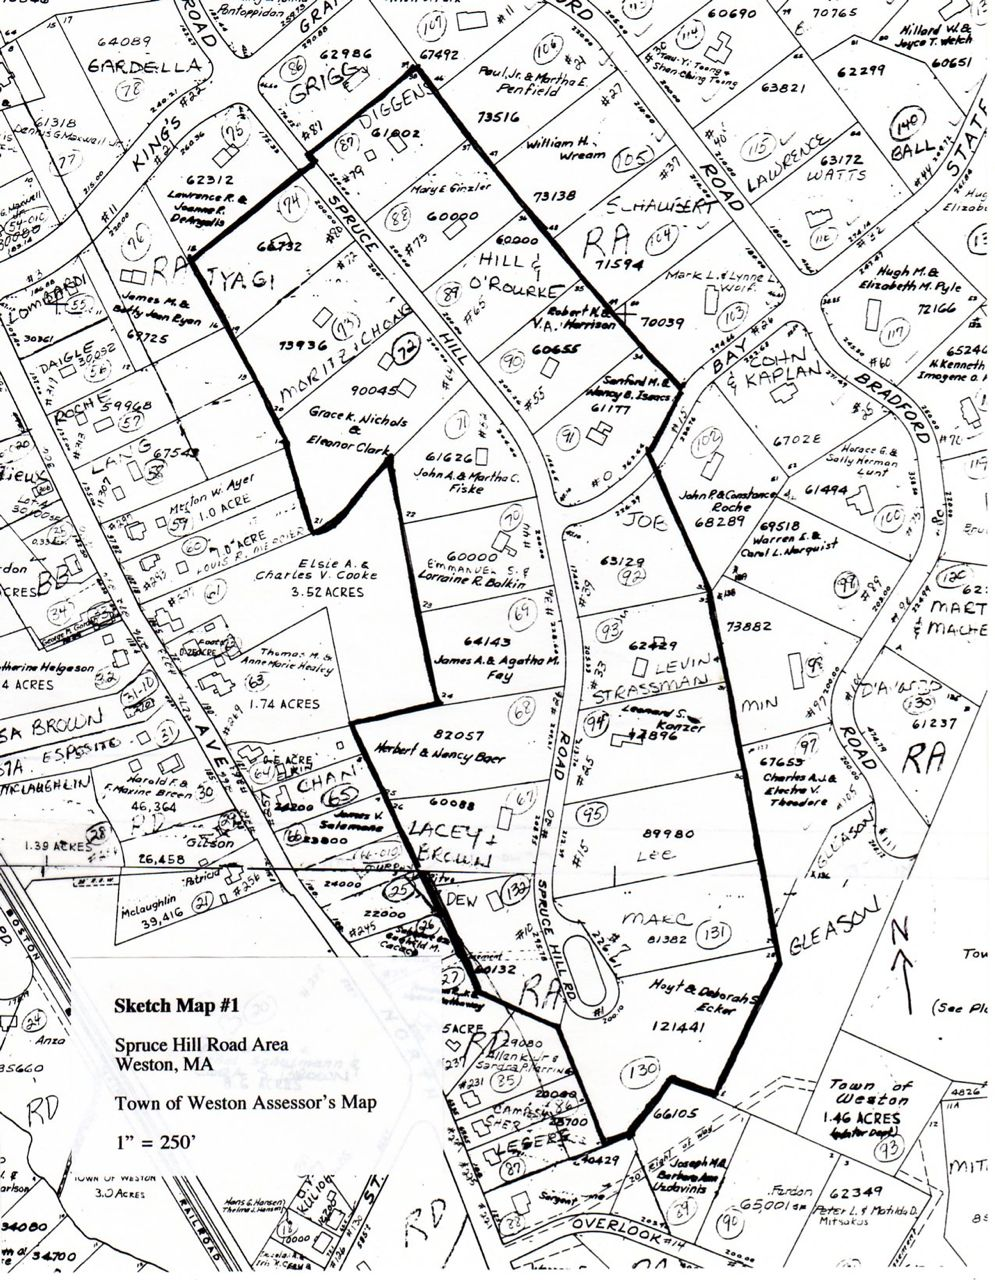 Spruce Hill Road Area sketch map